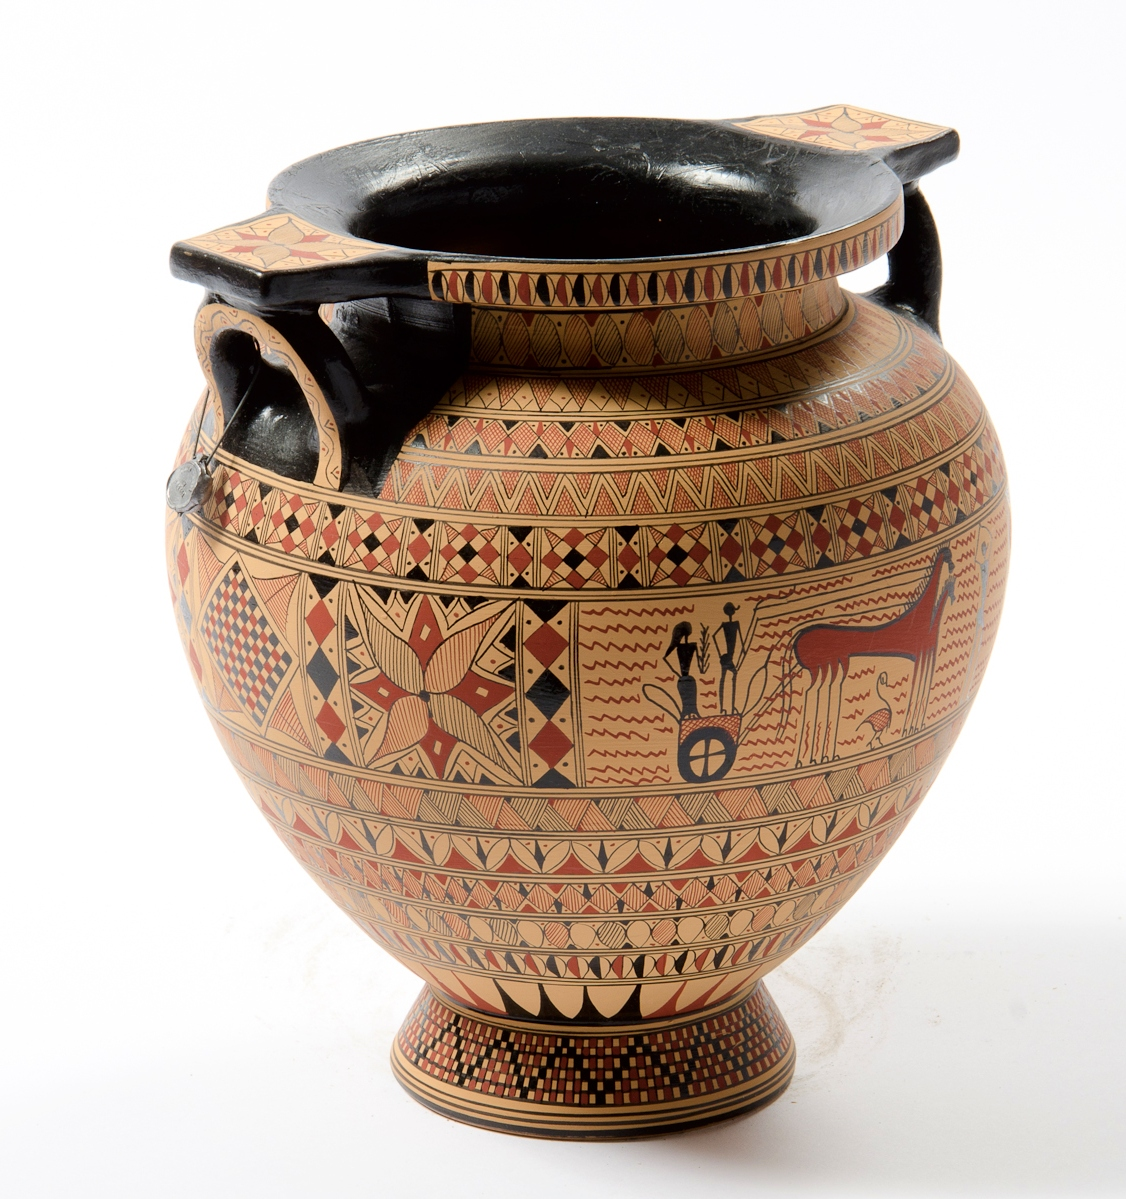 According to BRASWELL: Greek Vases